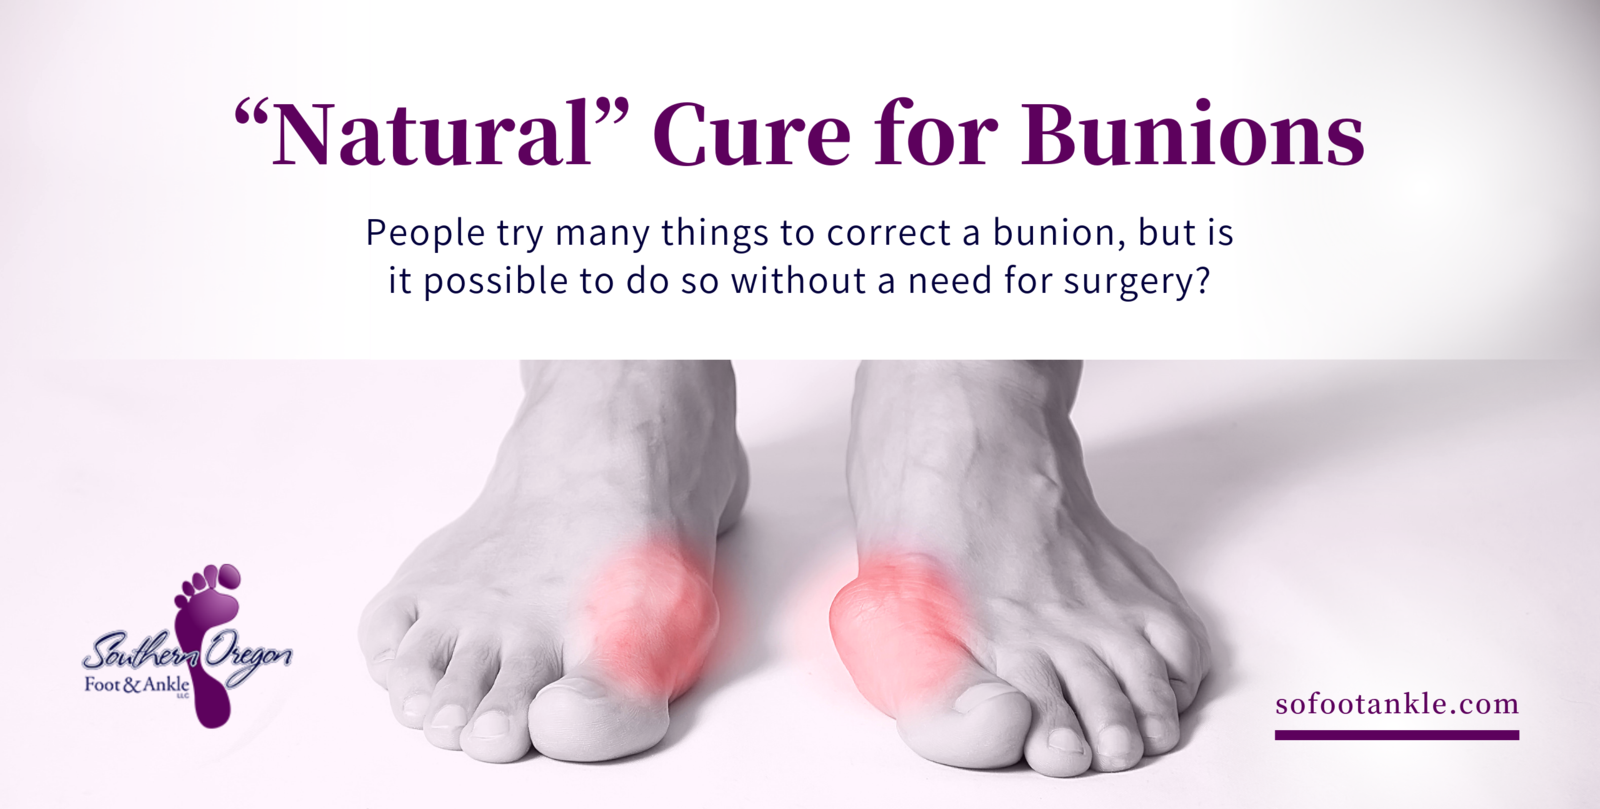 a natural cure for bunions